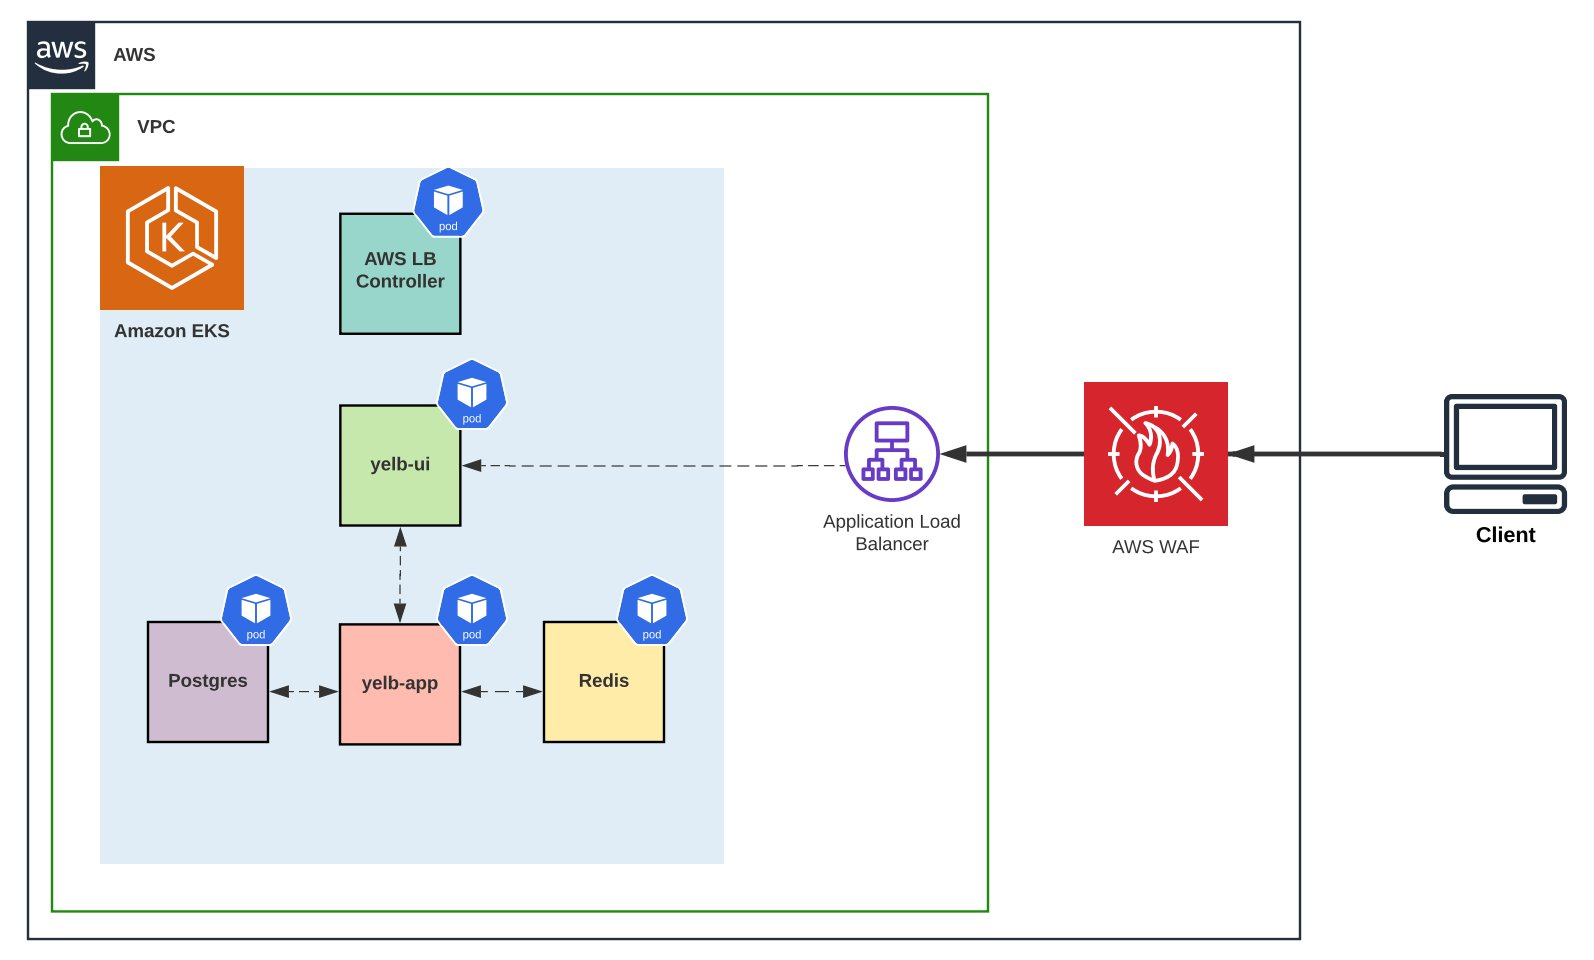 AWS WAF solution architecture diagram